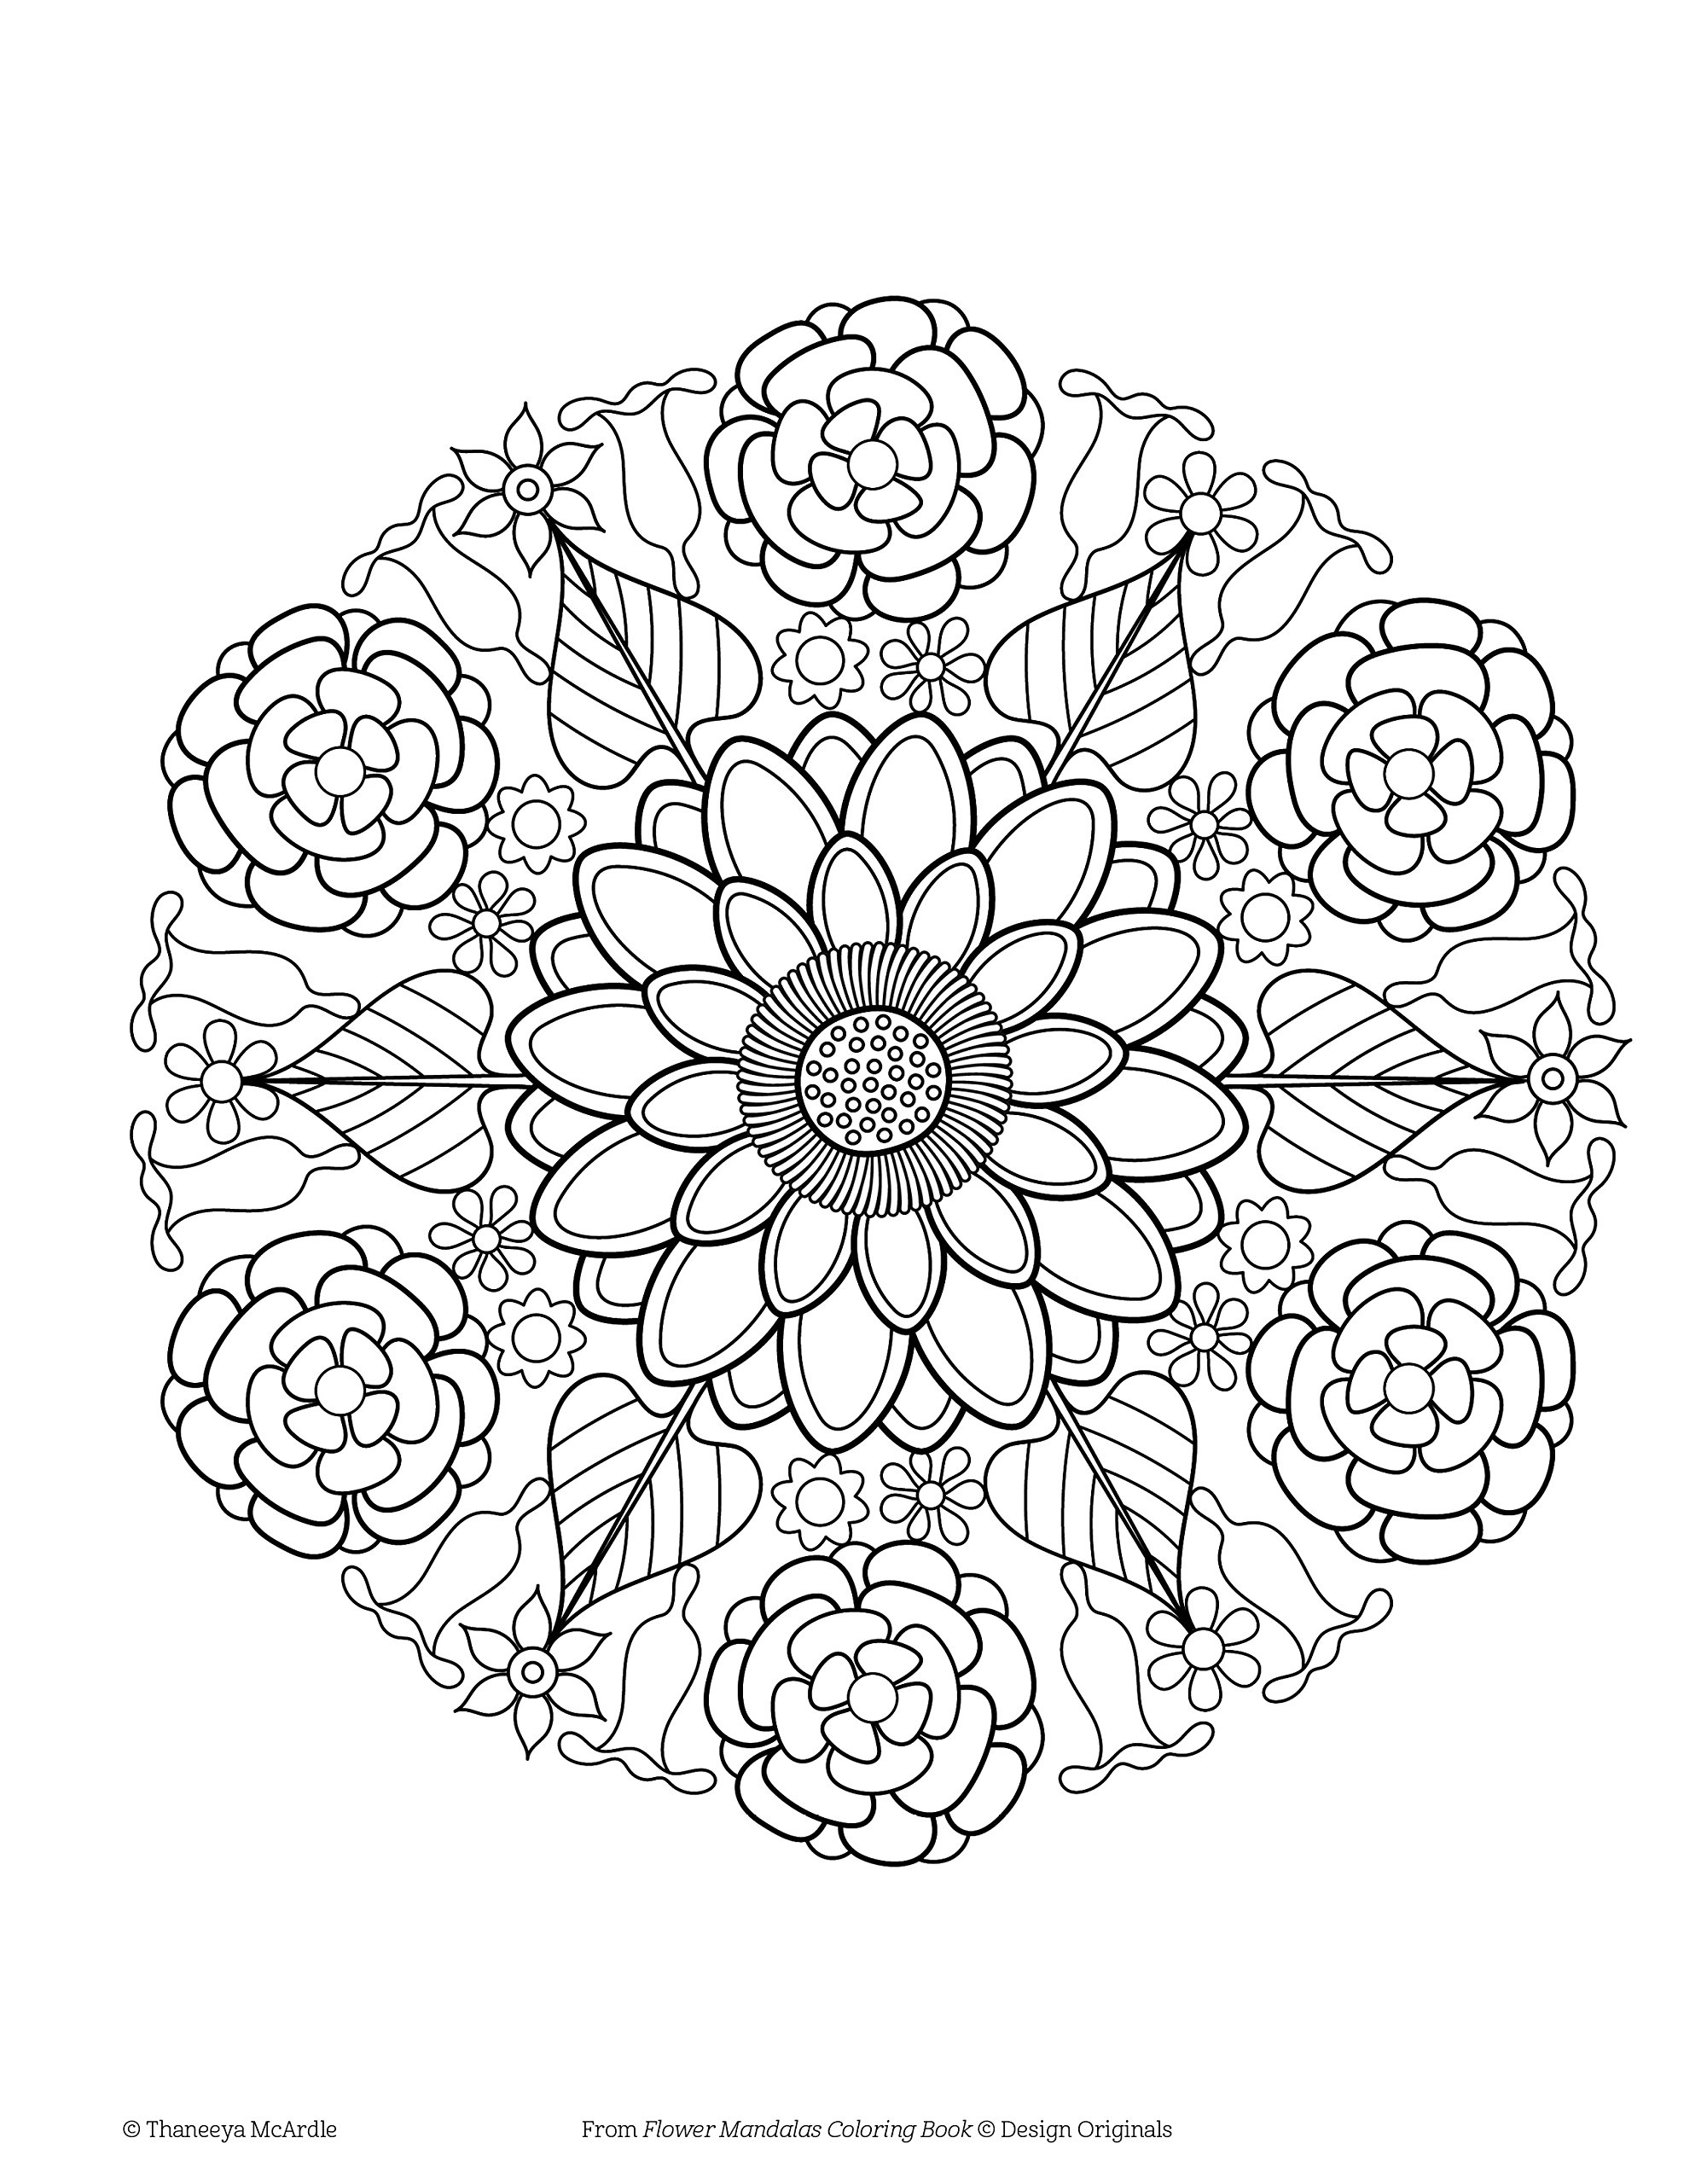 Amazon Flower Mandalas Coloring Book Is Fun Design Originals 0499995279735 Thaneeya McArdle Books